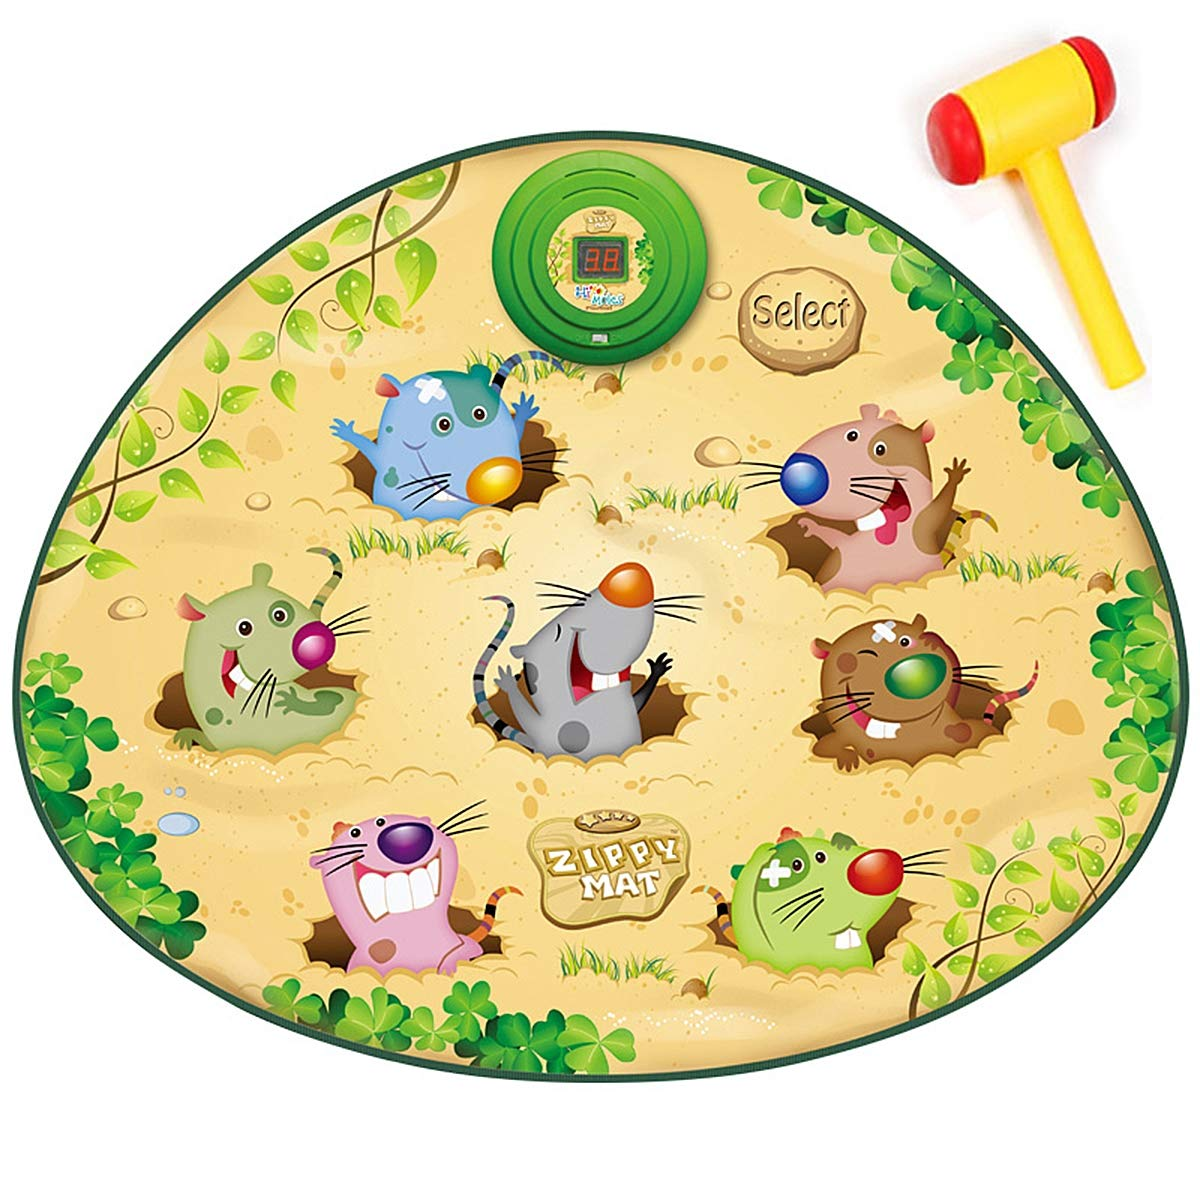 Playing Hamster Game Blanket, Kids Electronic Music Play Mat Security Electronic Keyboard Play Blanket Ideal Toys and Gifts for Children by Eustoma (Image #1)